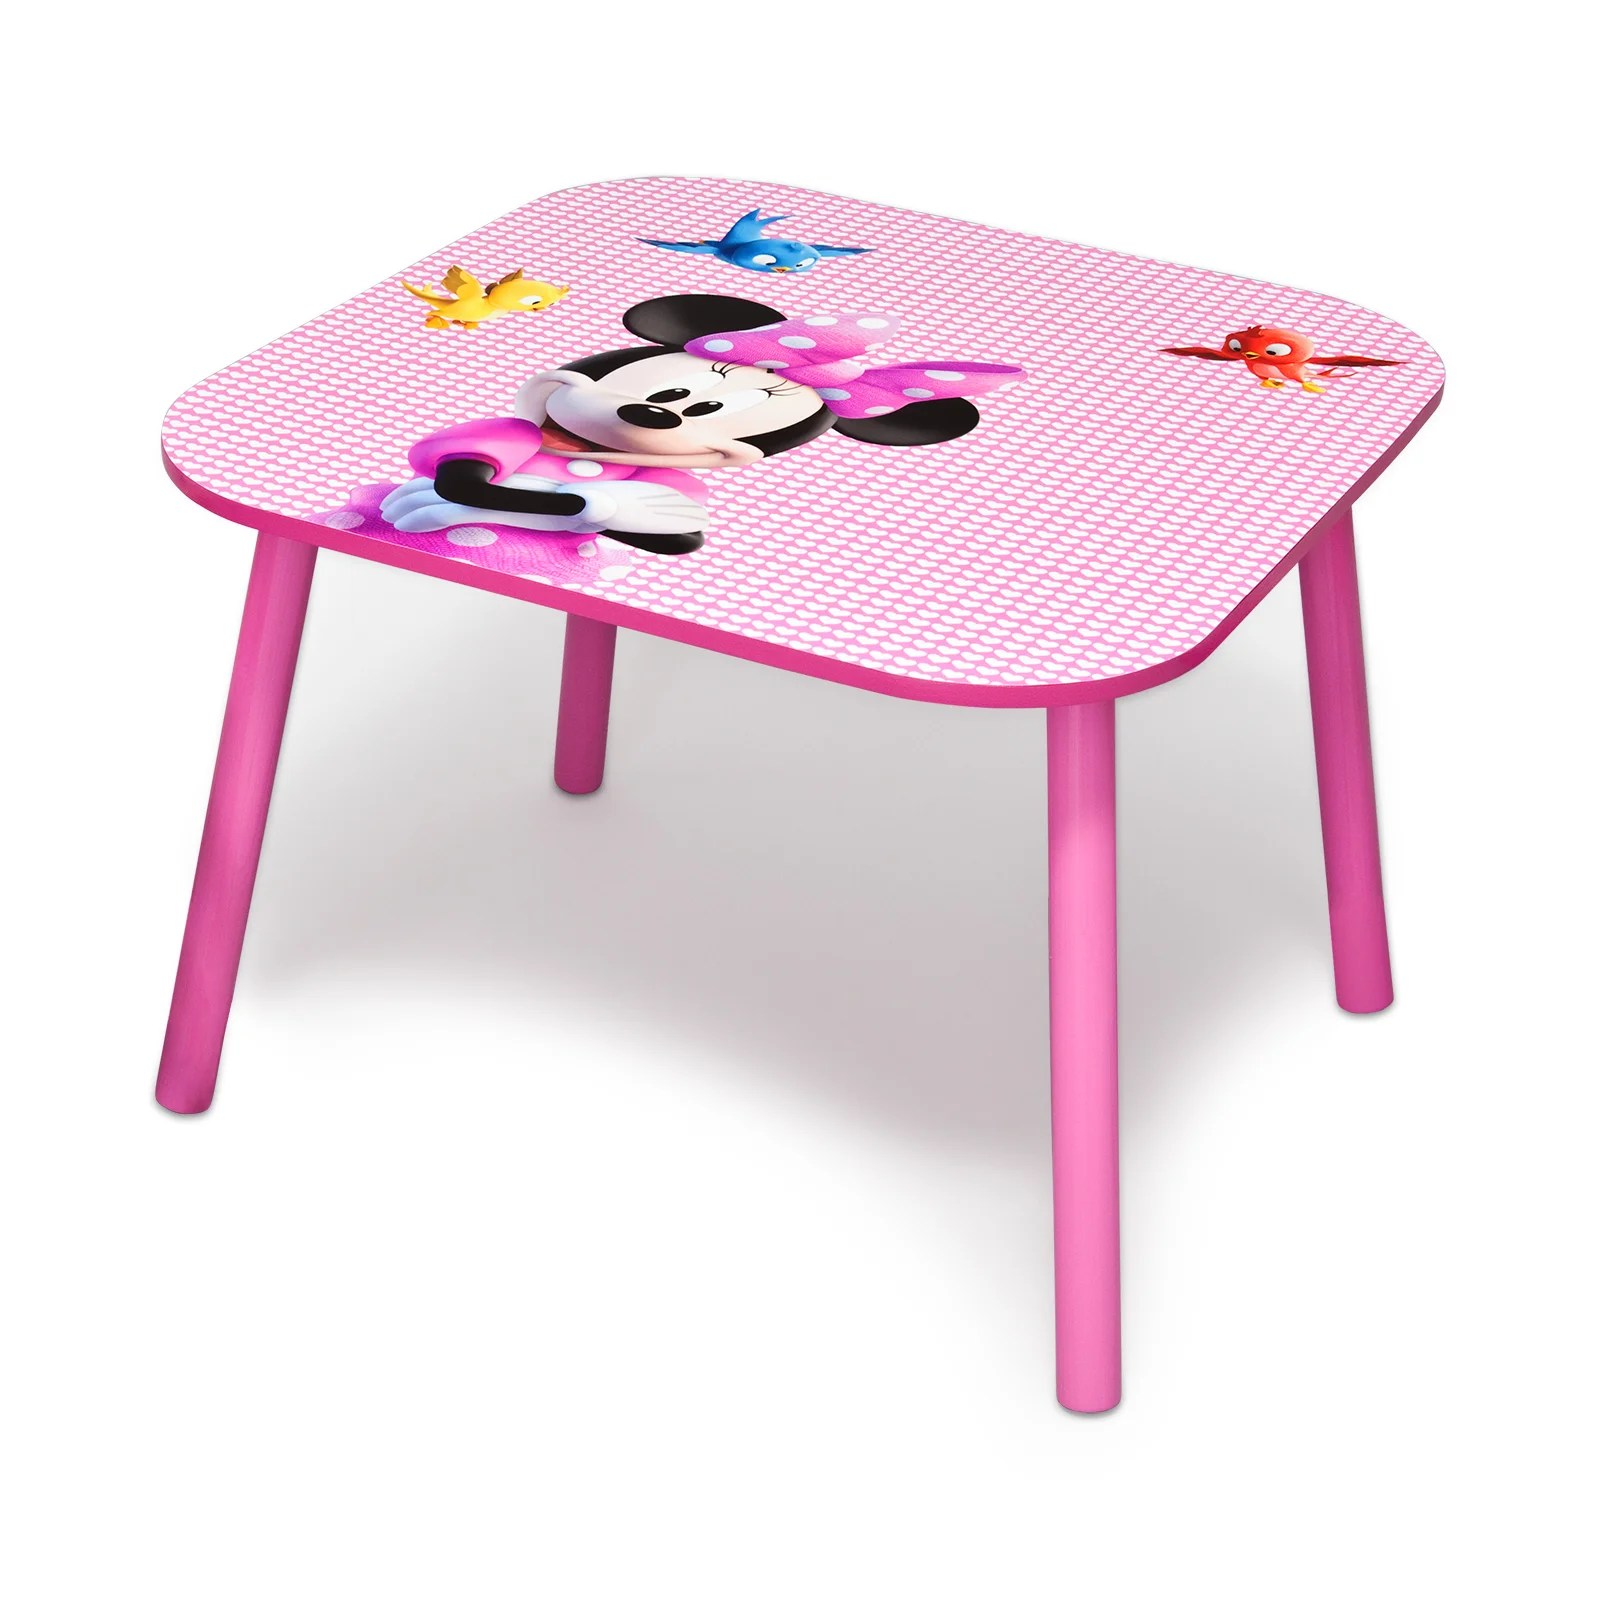 minnie table and chairs lawn chair usa deltachildrenuk children 3 piece square